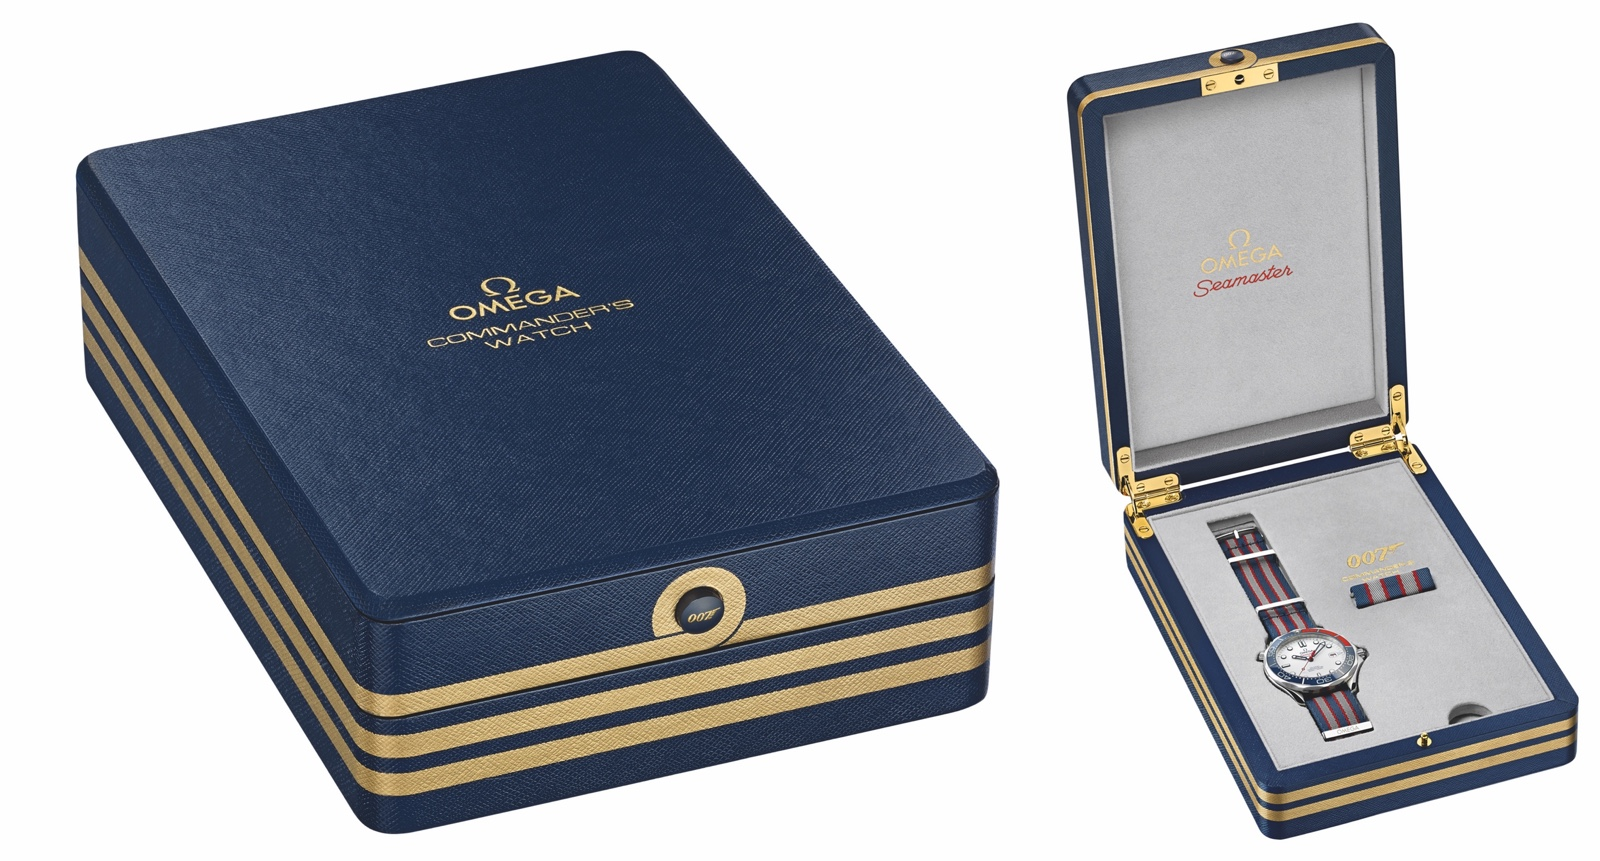 Omega Seamaster Diver 300M Commanders Watch Box